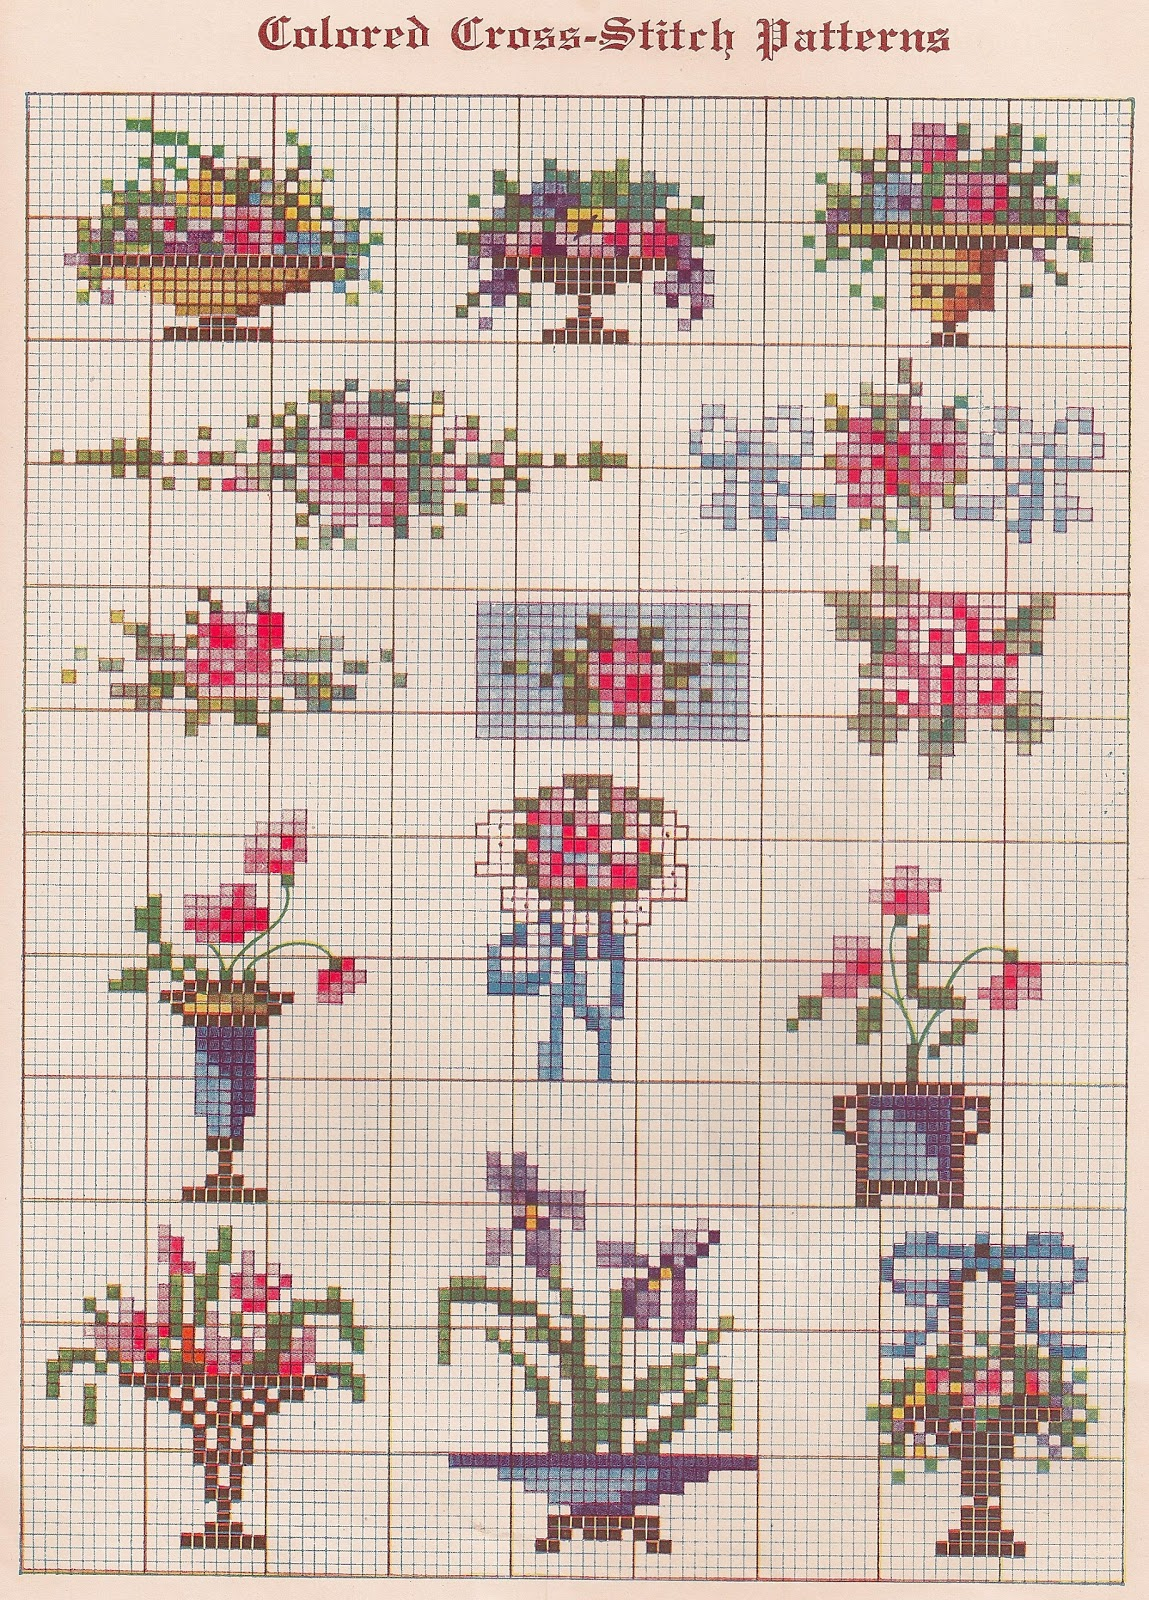 crossStitchPattern on JumPic com